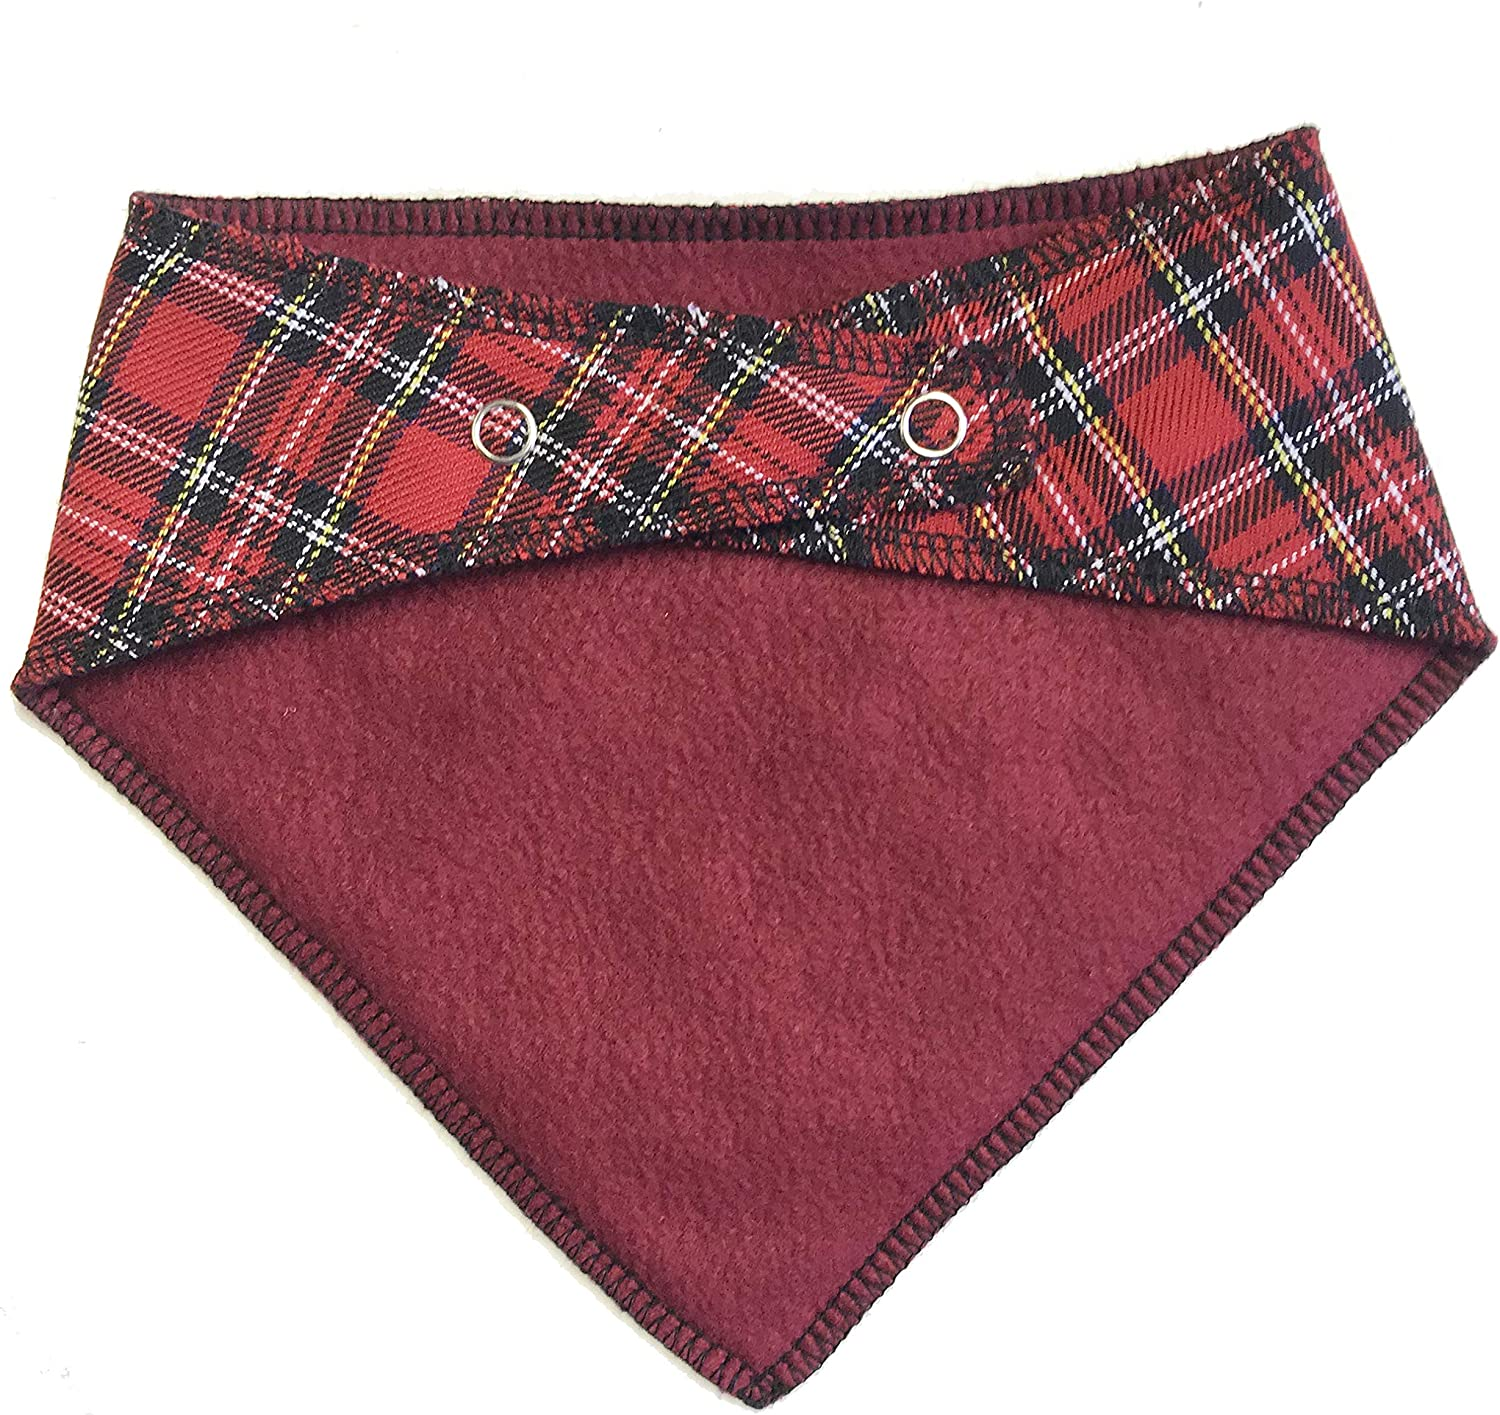 Spoilt Rotten Pets S1 Personalised Red Tartan Dog Bandana Custom Embroidered With Any Name Suitable For Miniature Dogs Dachshunds /& Cats